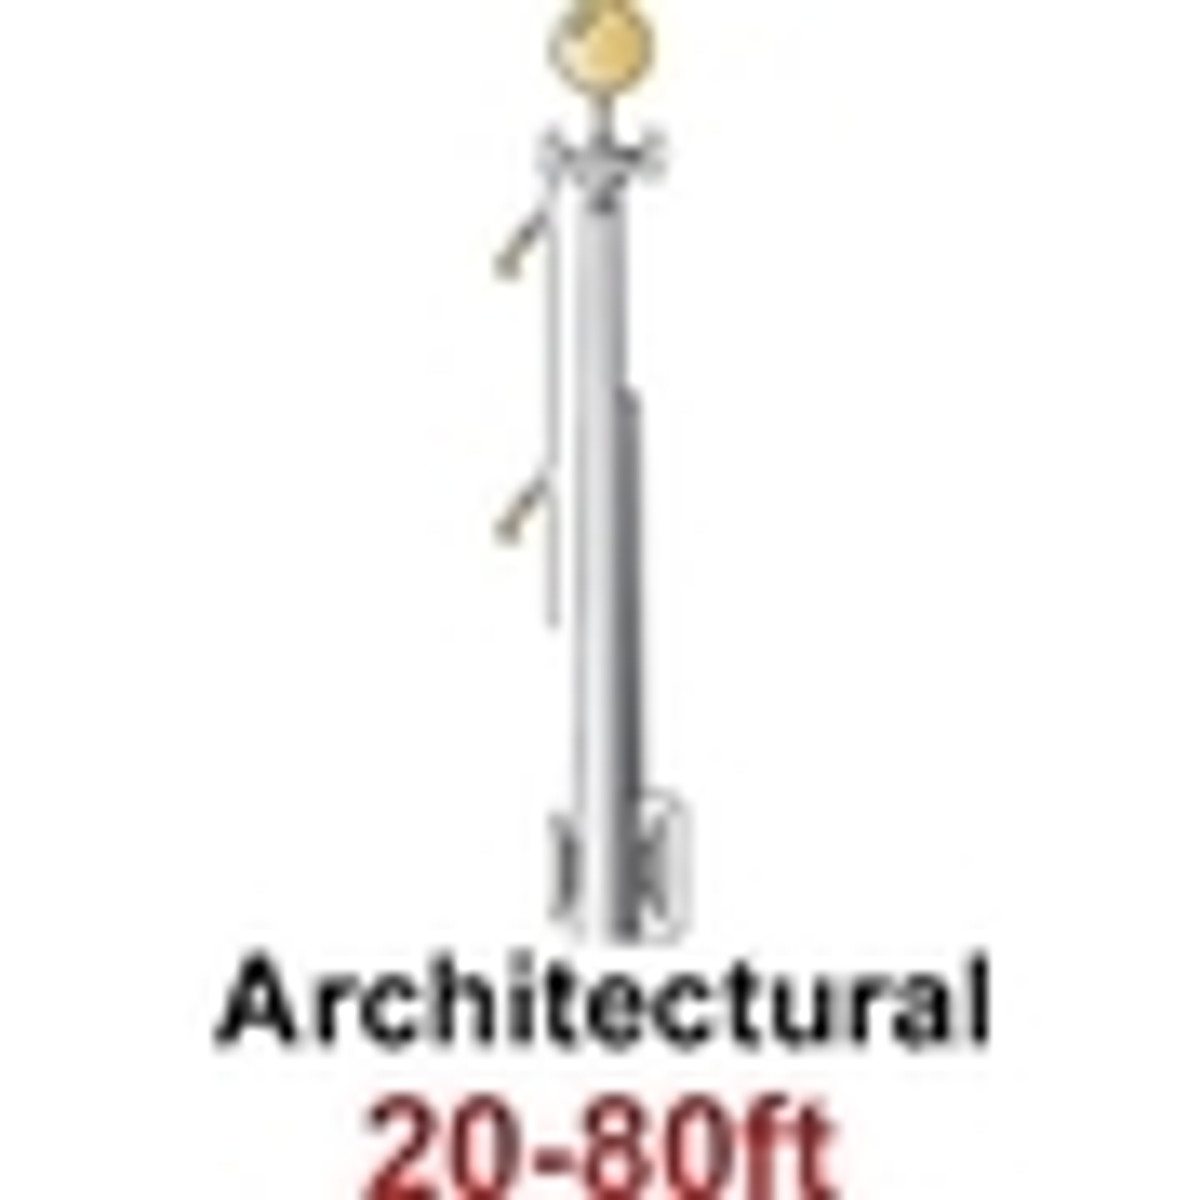 Architectural Commercial Flagpoles